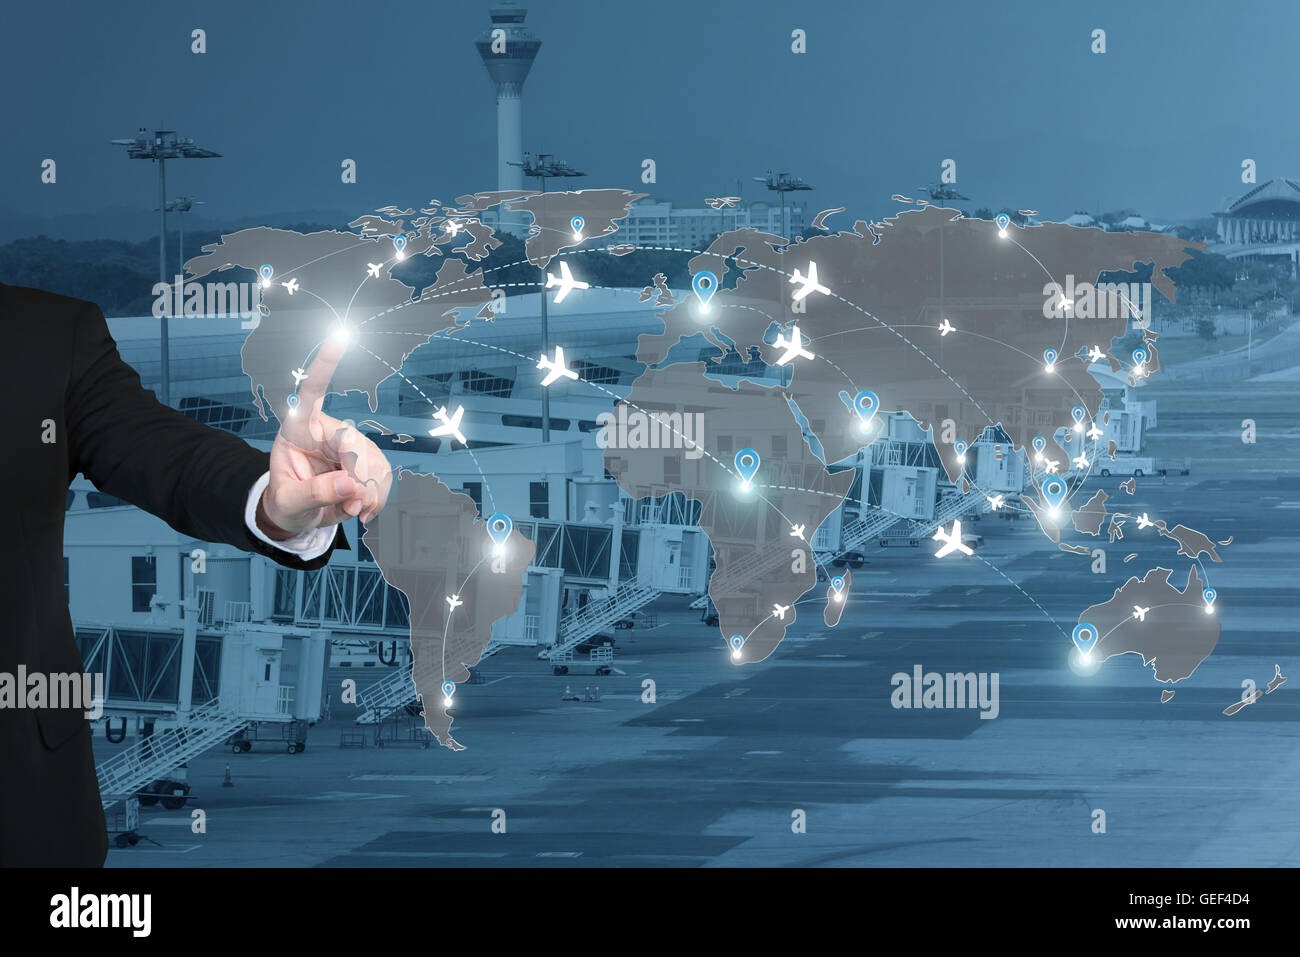 Businessman working with virtual interface connection map of flight routes airplanes network use for global travel - Stock Image